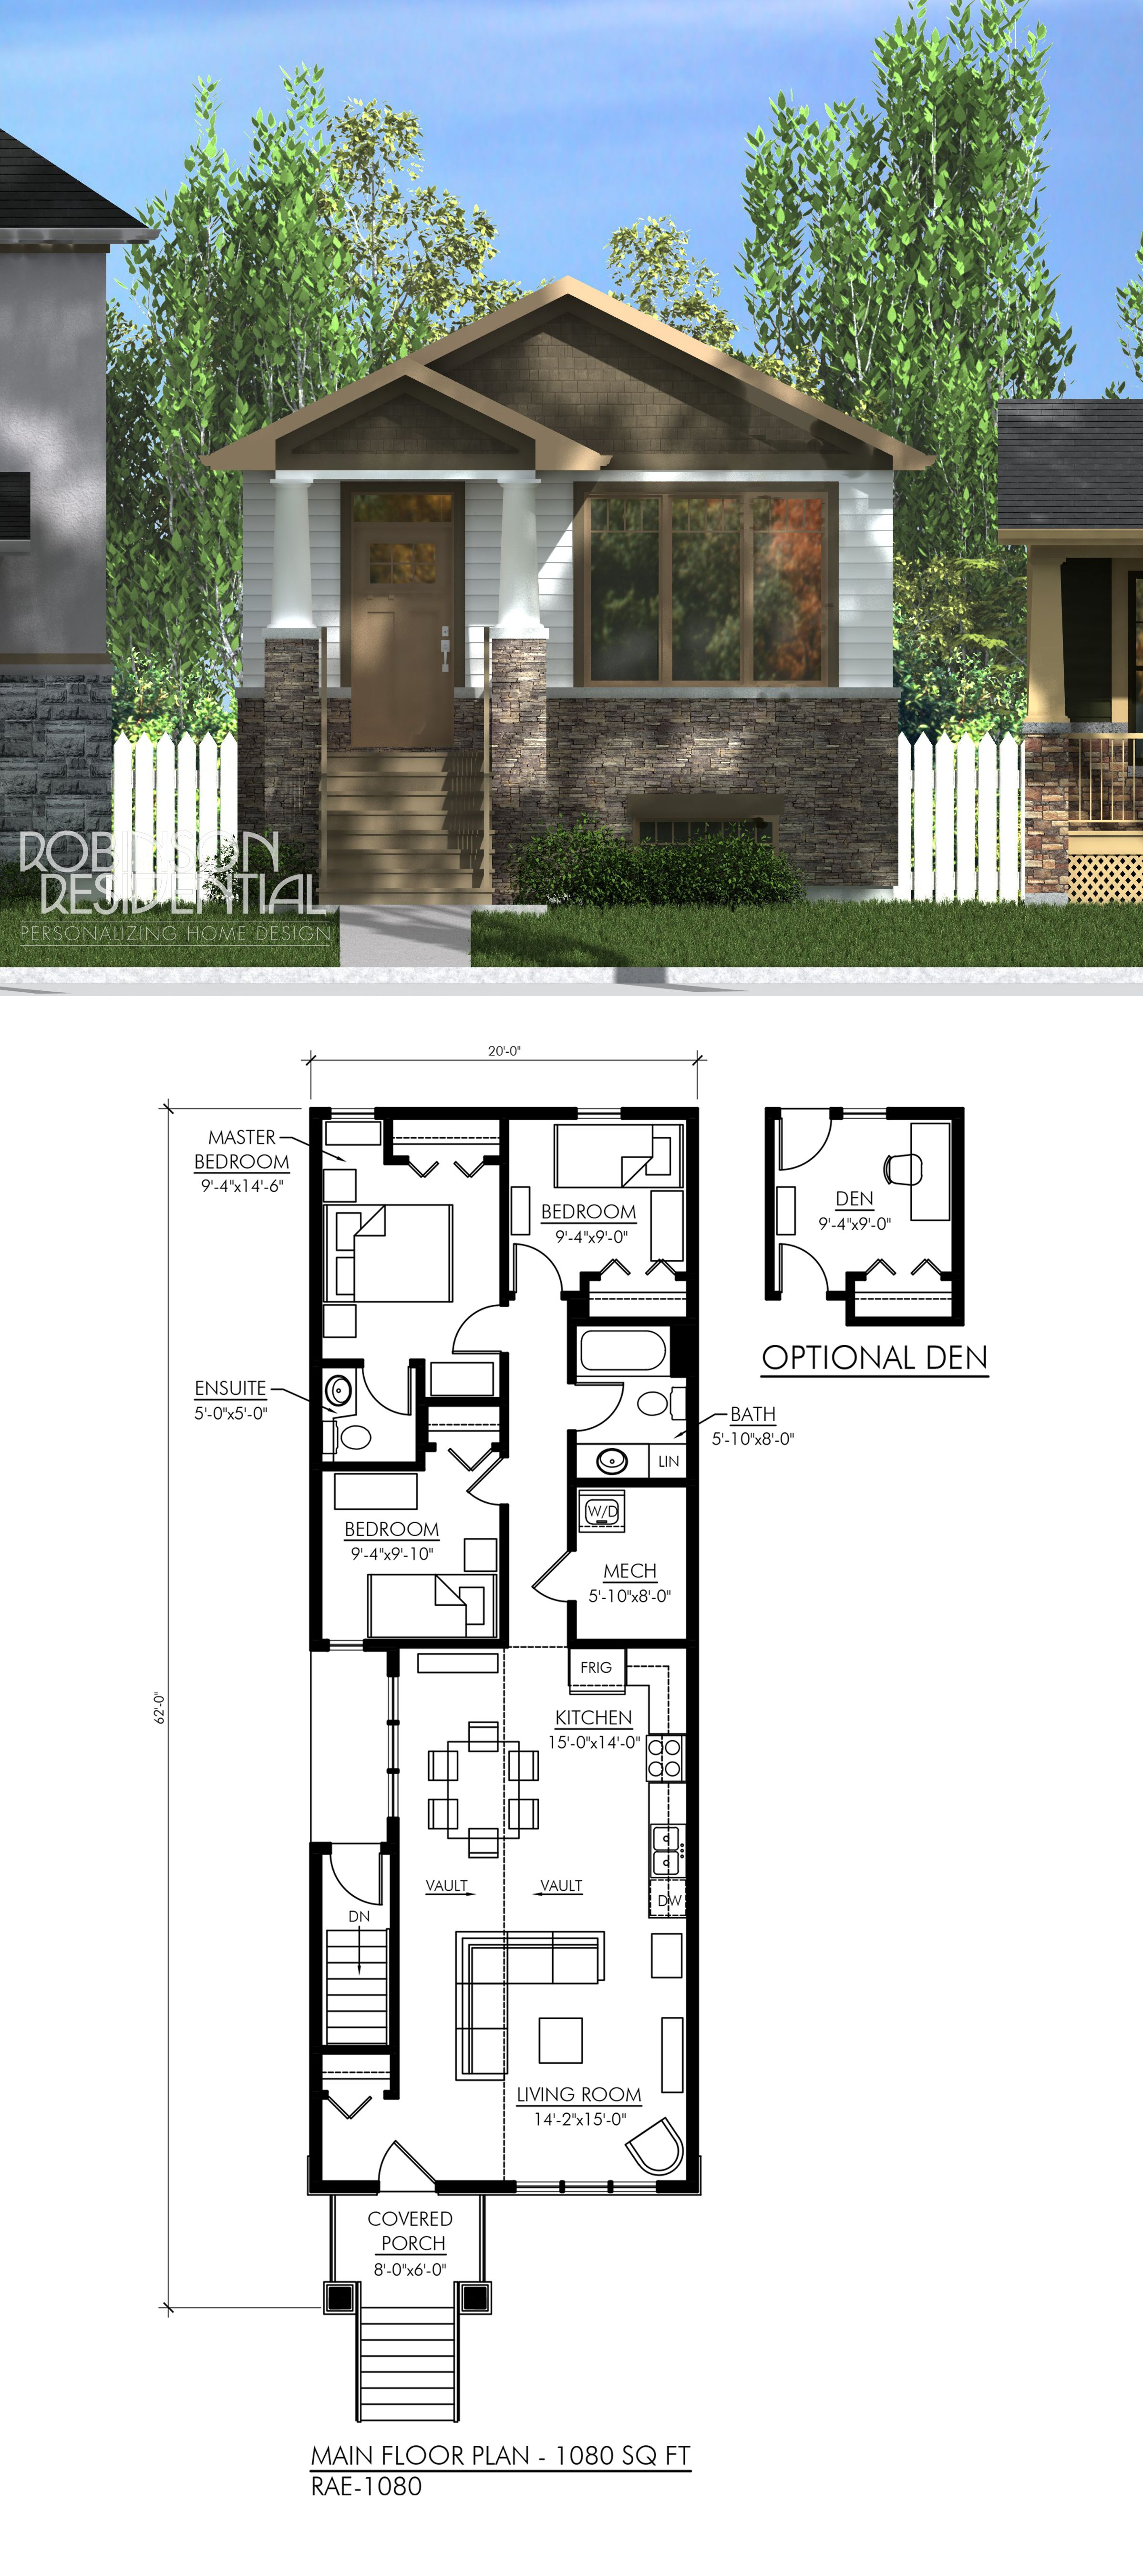 Craftsman Rae 1080 Robinson Plans Craftsman House Plans Small House House Plans